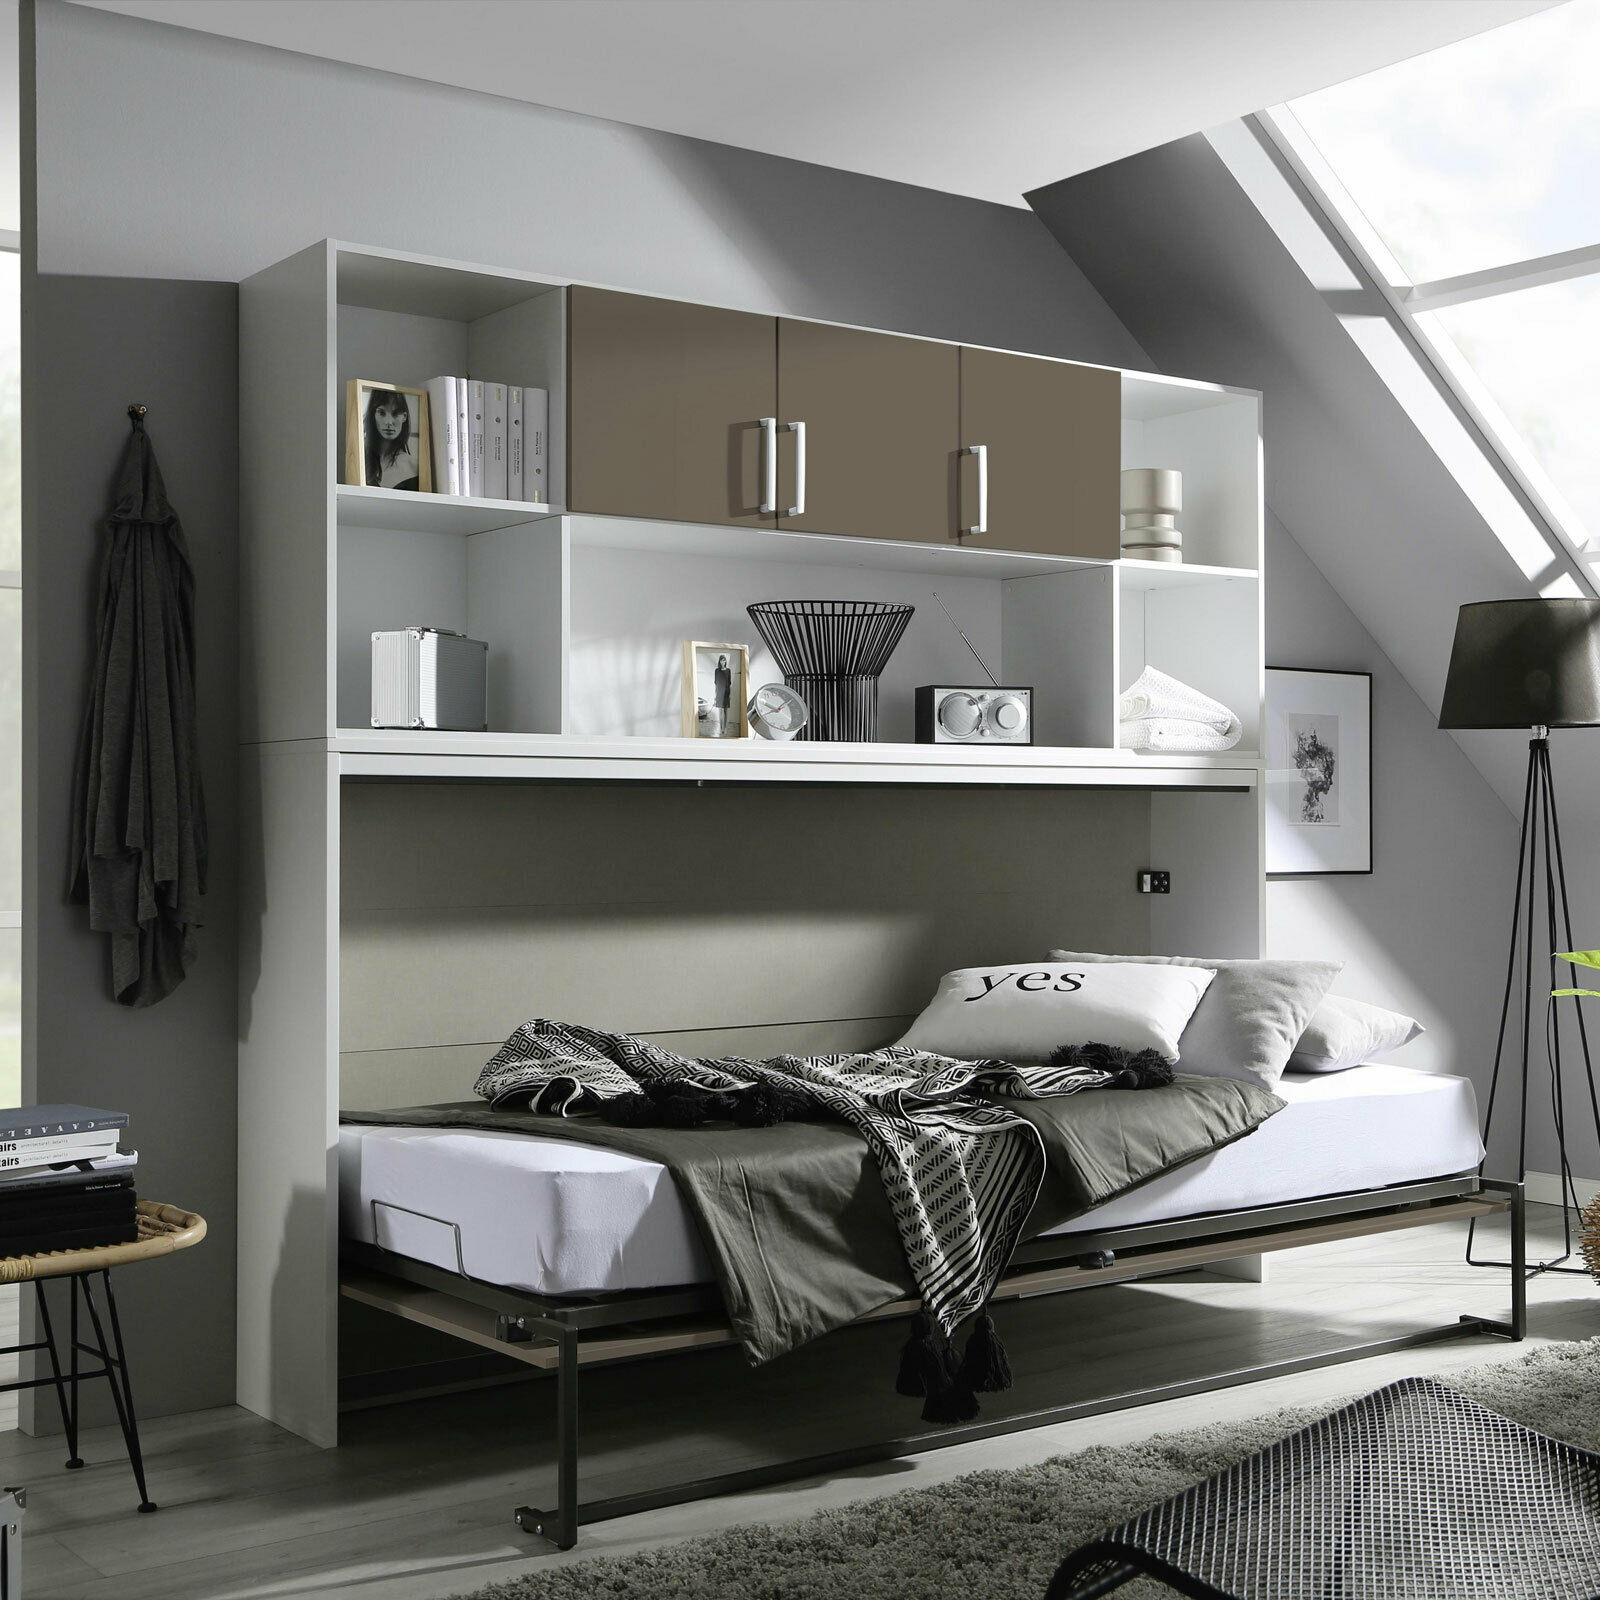 schrankbett albero bett kleiderschrank regal bett berbau wei lavagrau 90x200 cm eur 749 95. Black Bedroom Furniture Sets. Home Design Ideas